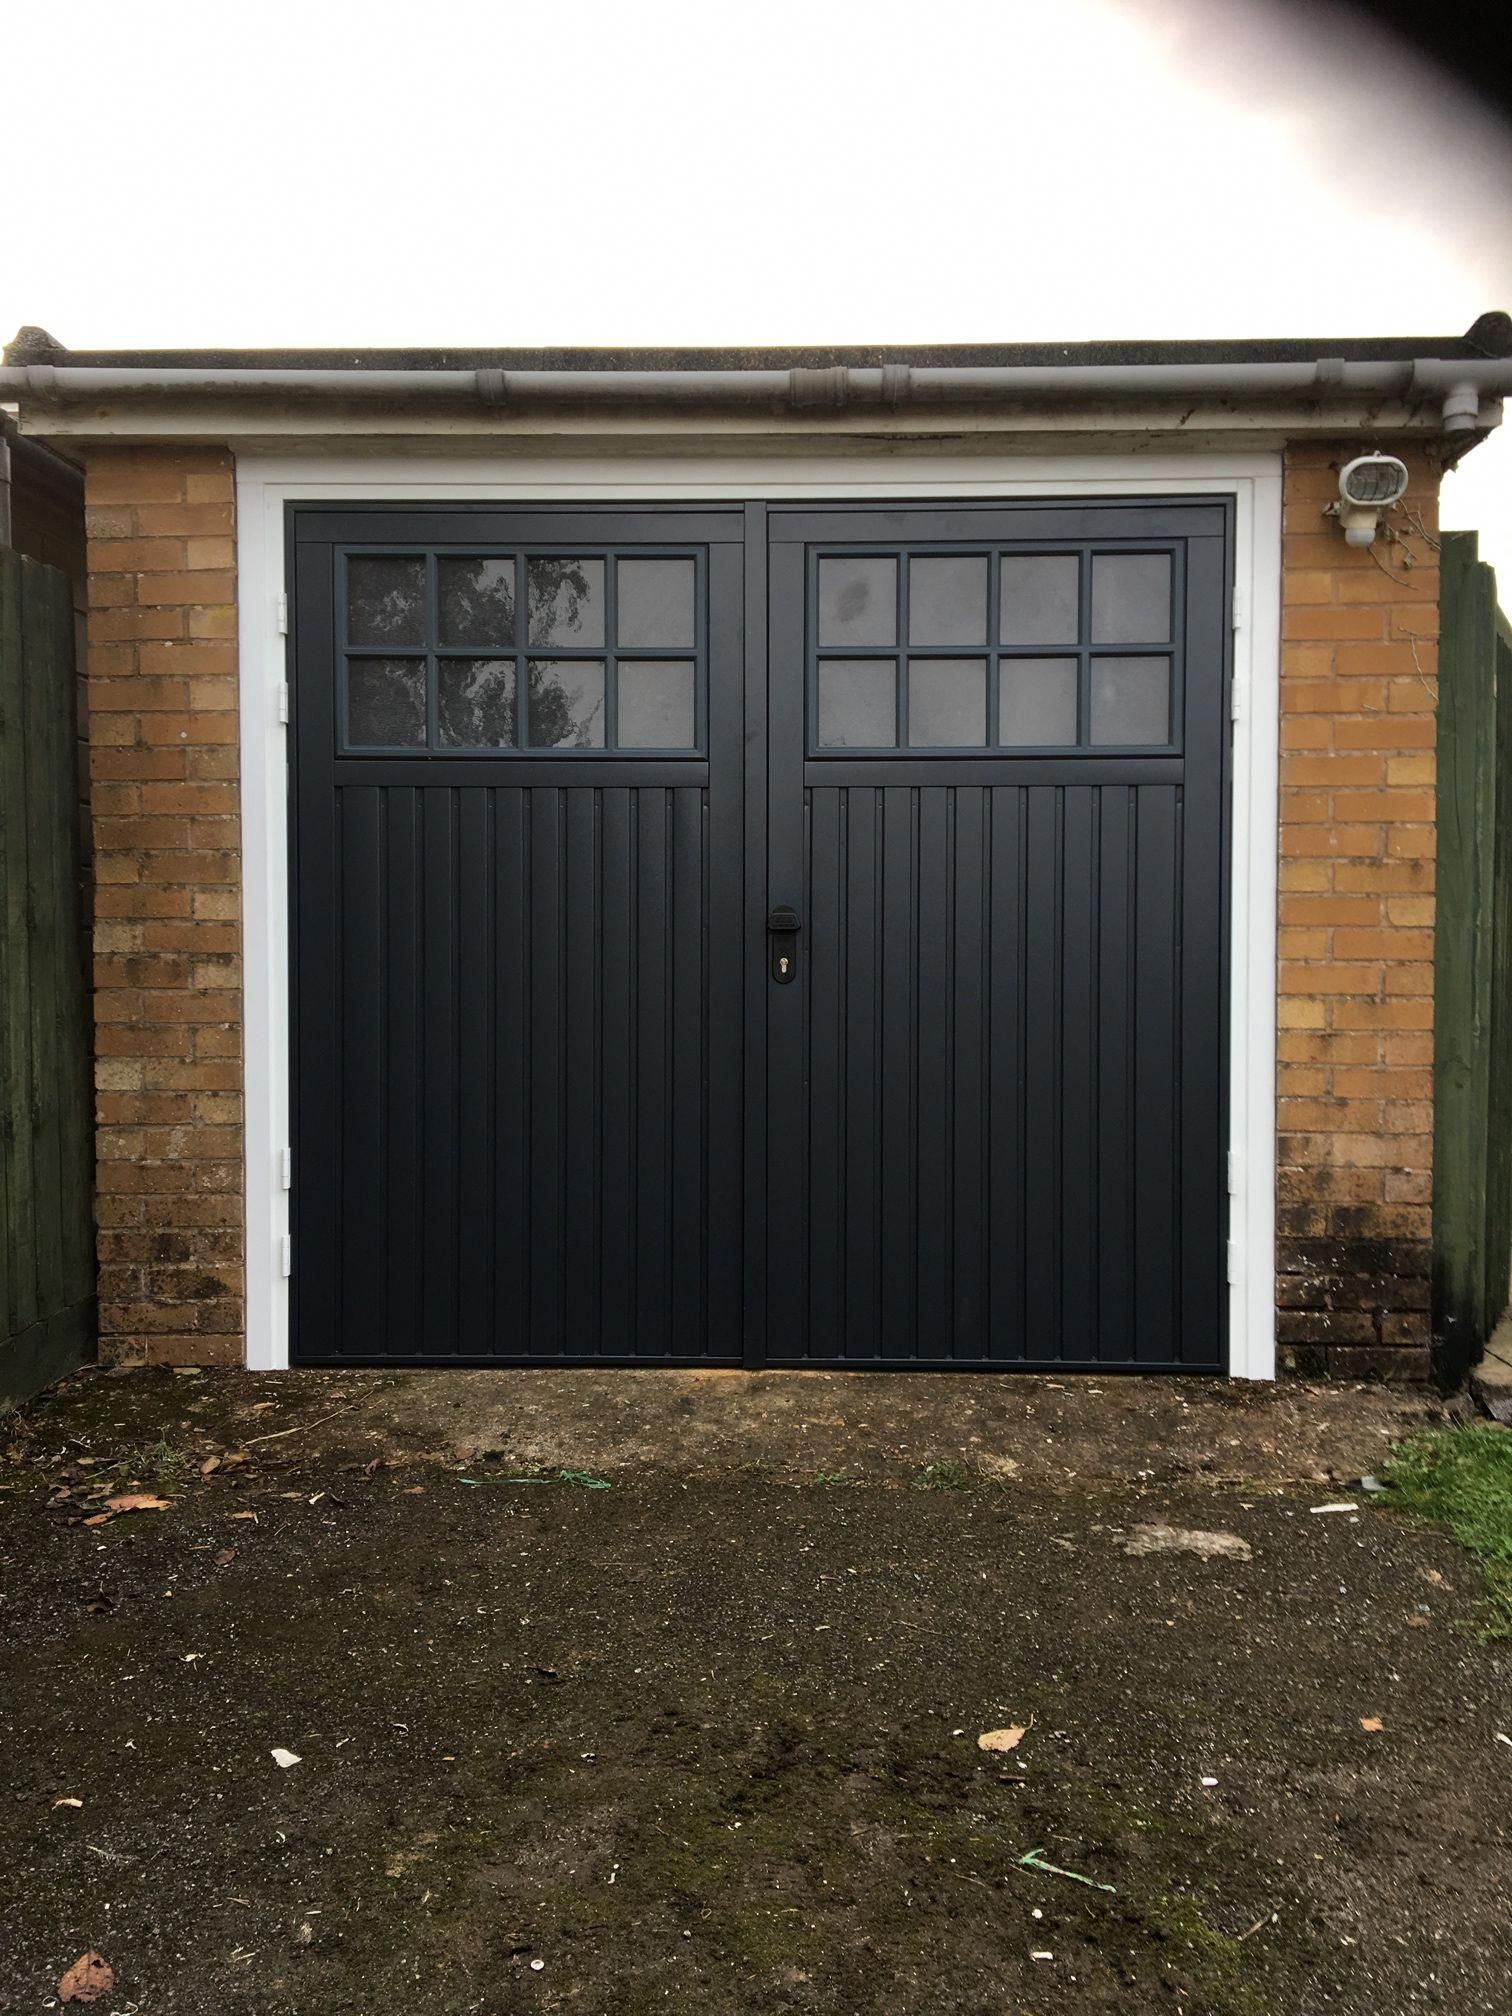 This Excellent Industrial Garage Door Is Certainly An Inspirational And Really Good Idea Industrialgaragedoo Garage Doors Garage Door Styles Garage Door Types